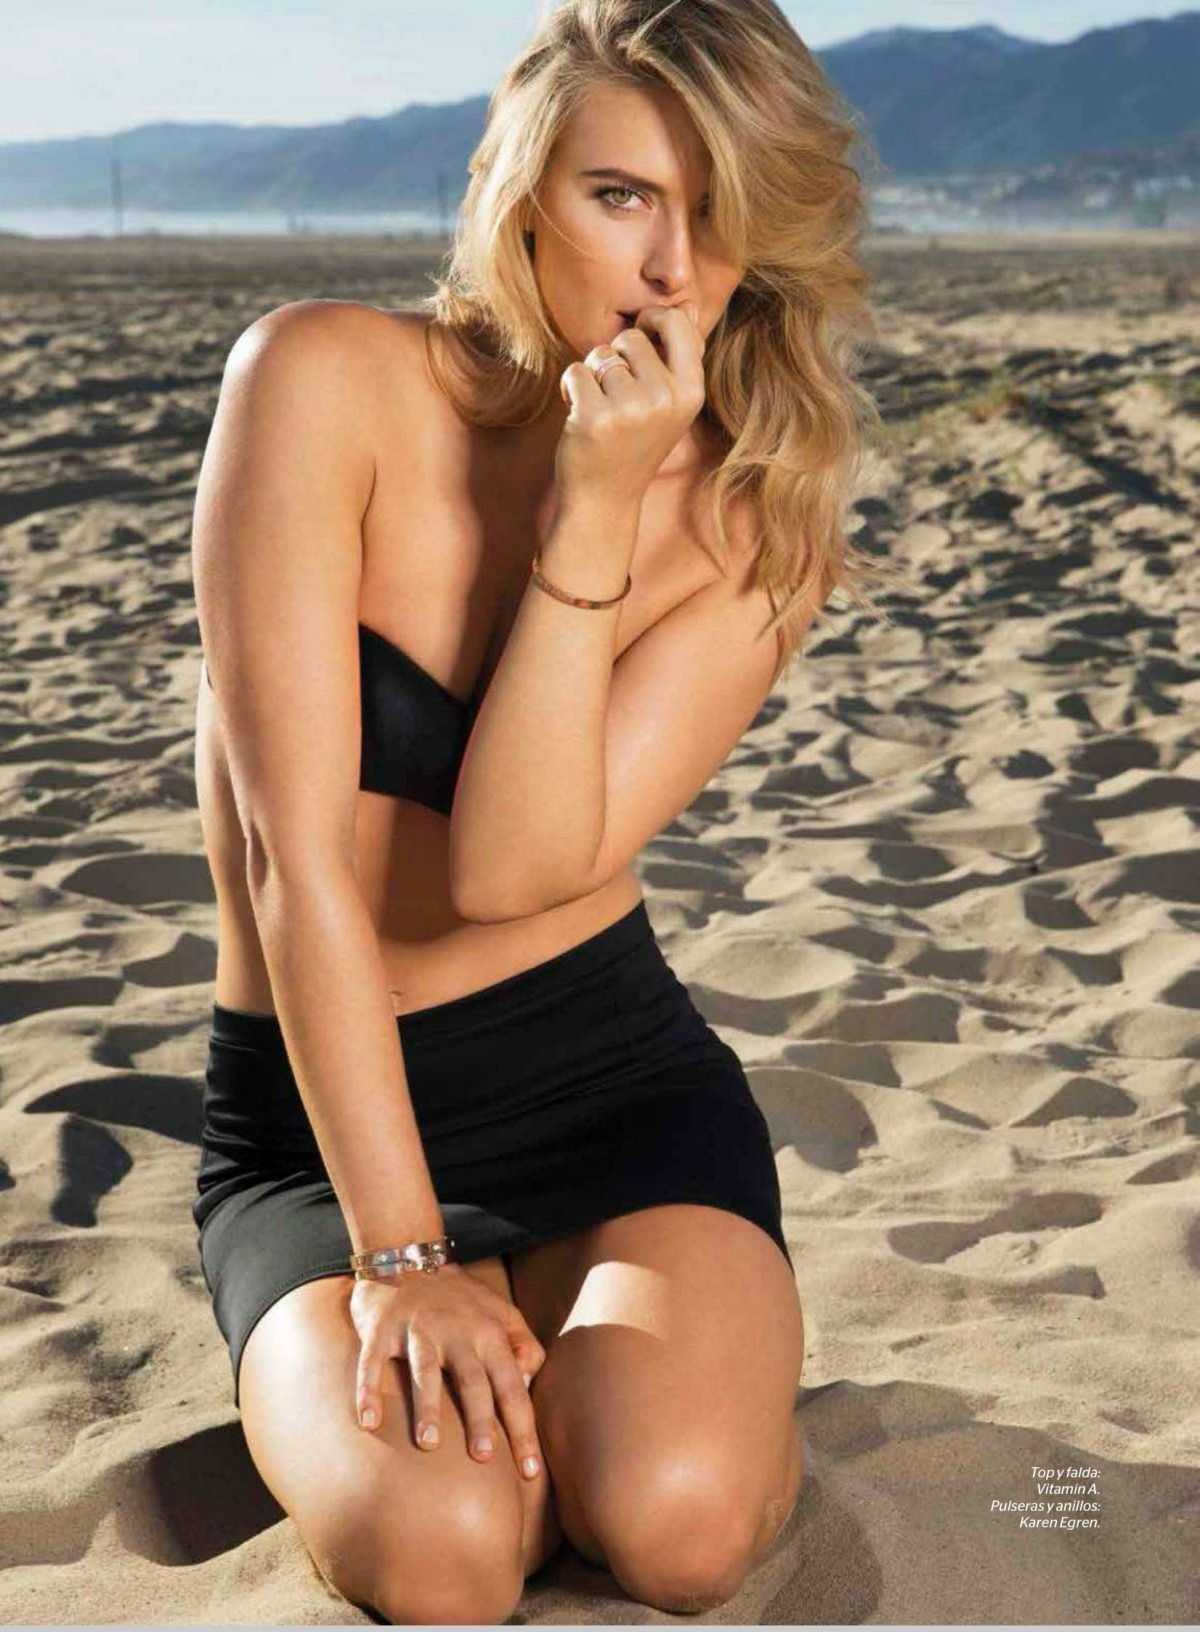 MARIA SHARAPOVA in Esquire Magazine, Mexico June 2015 Issue